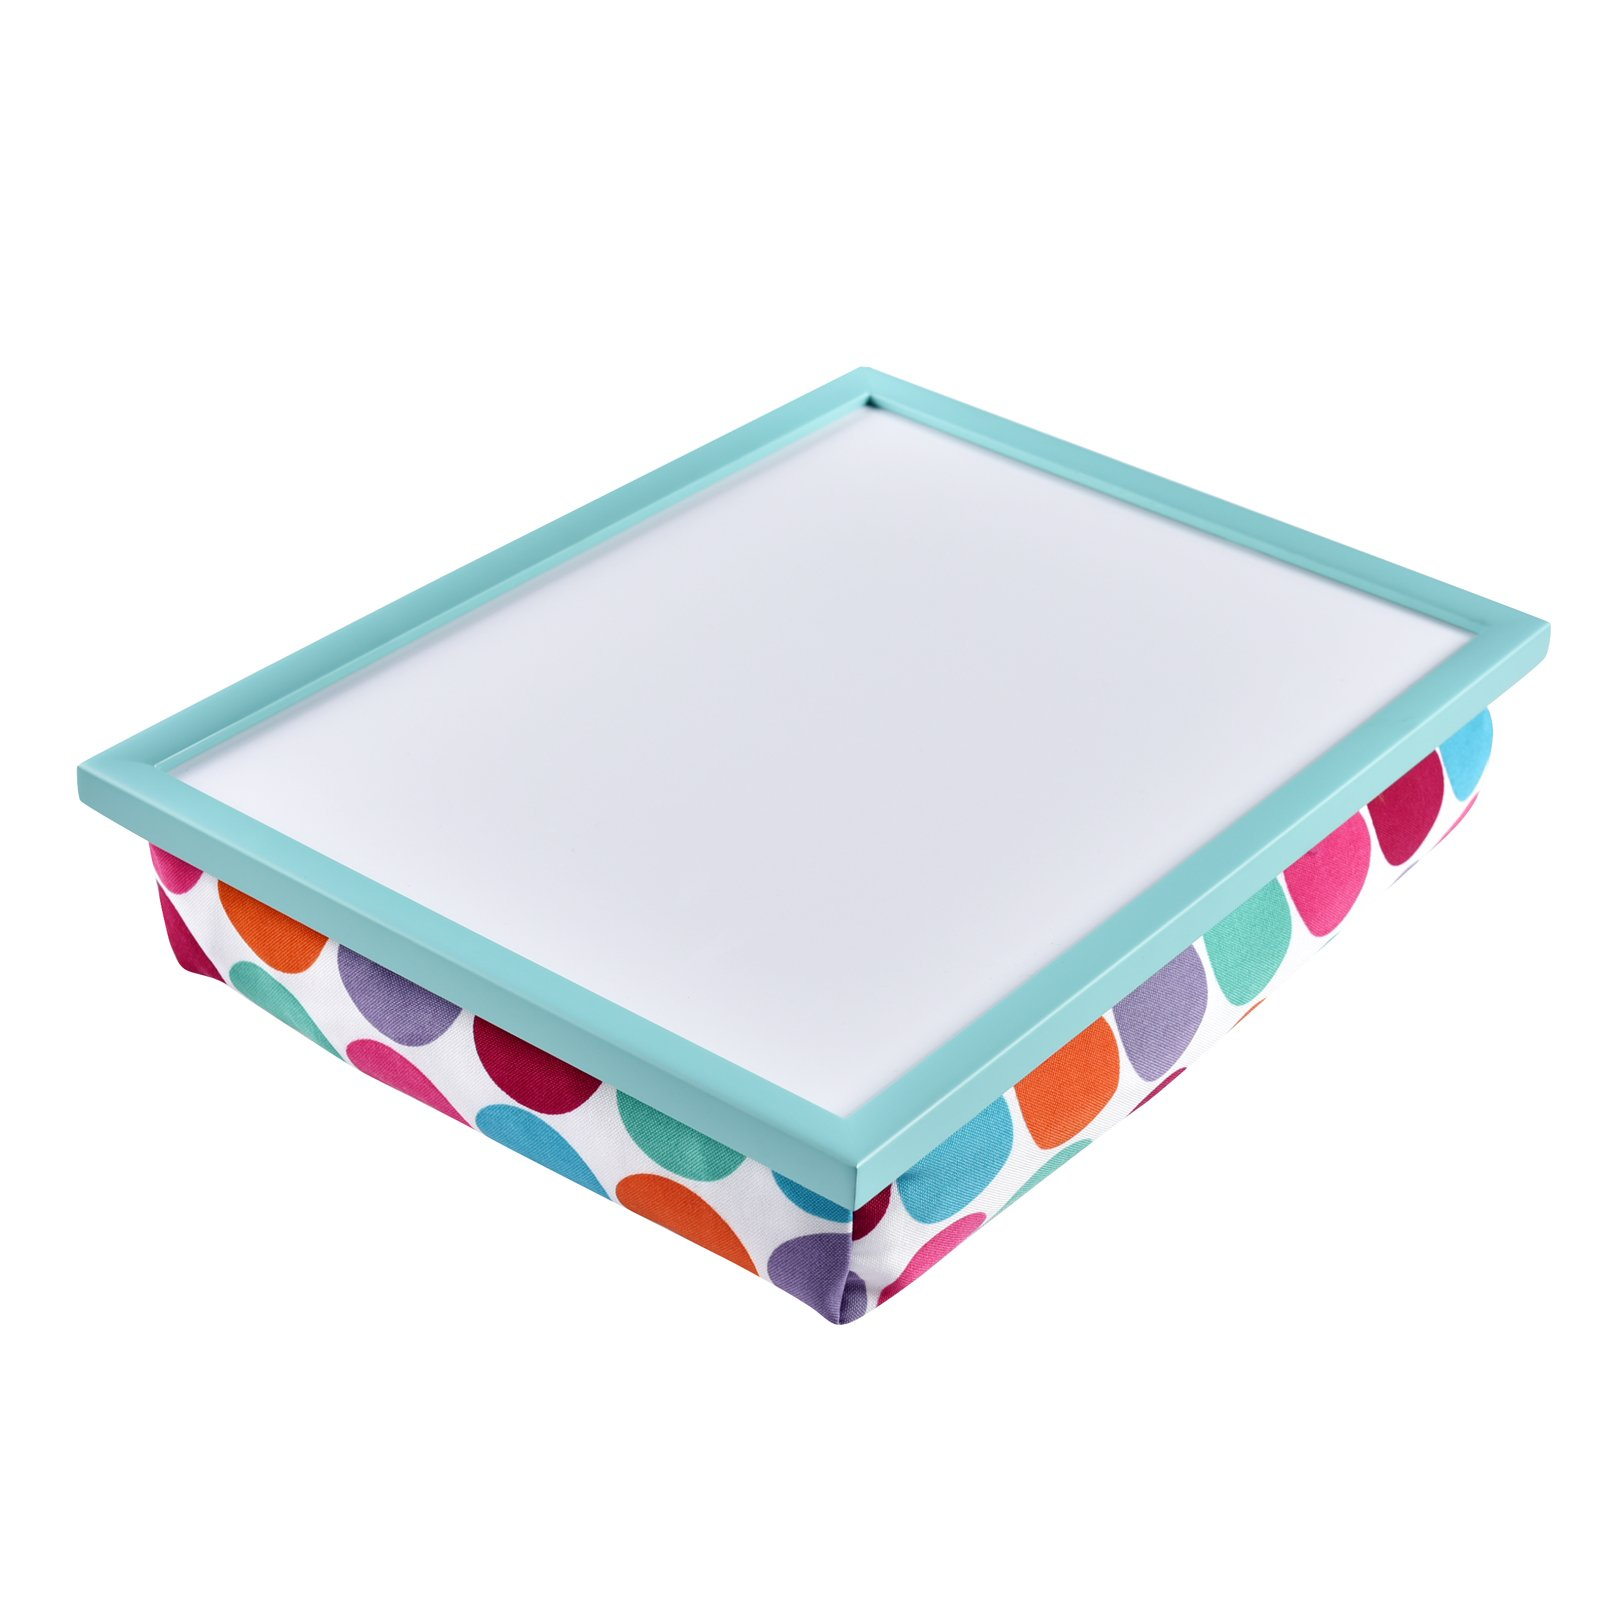 WELLAND Multi Tasking Laptop Breakfast Serving Bed Tray Lap Desk (Colorful Dot) by WELLAND